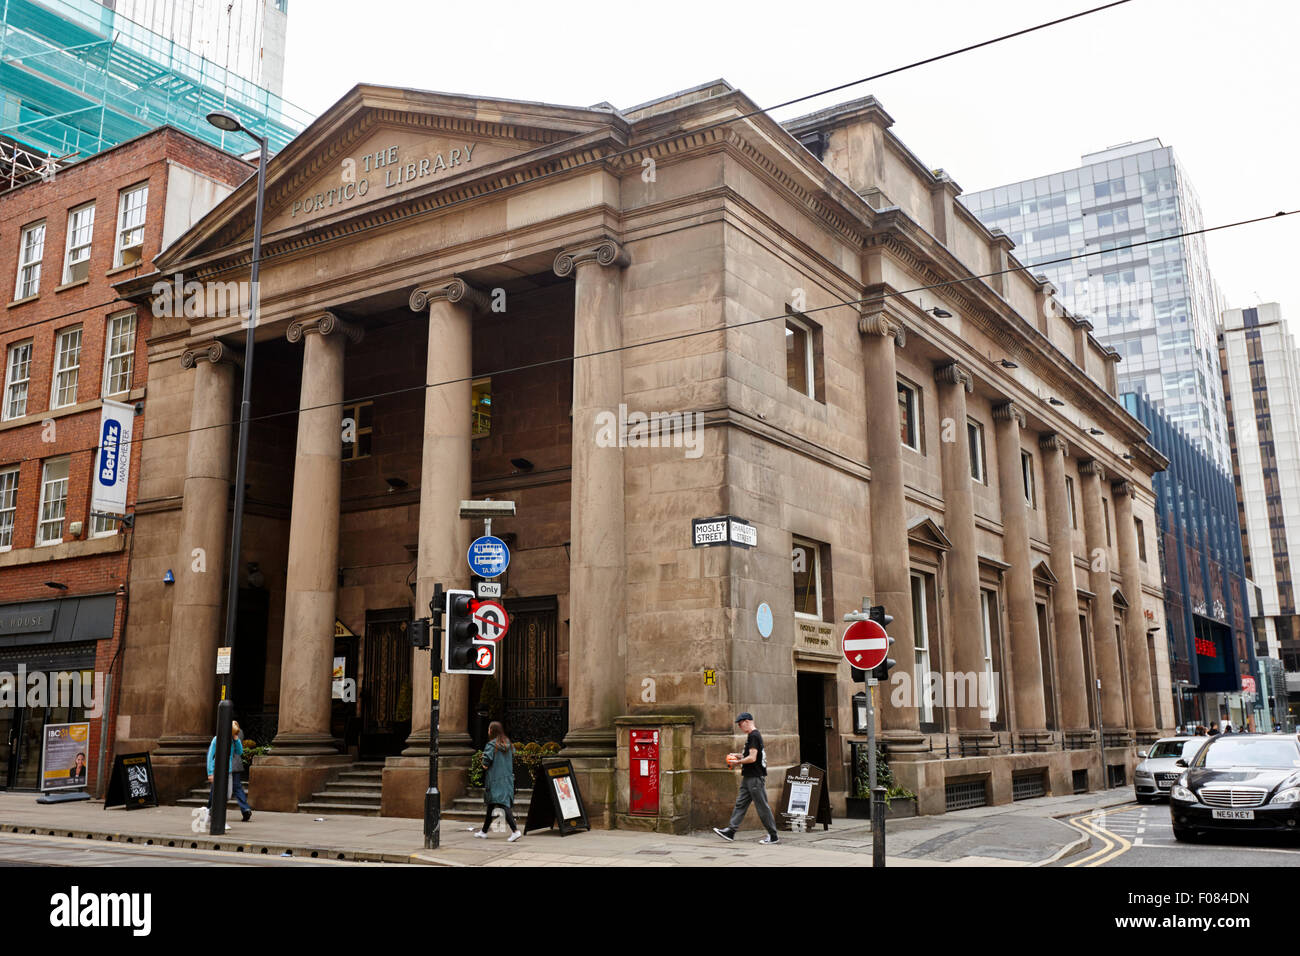 the portico library building Manchester England UK - Stock Image